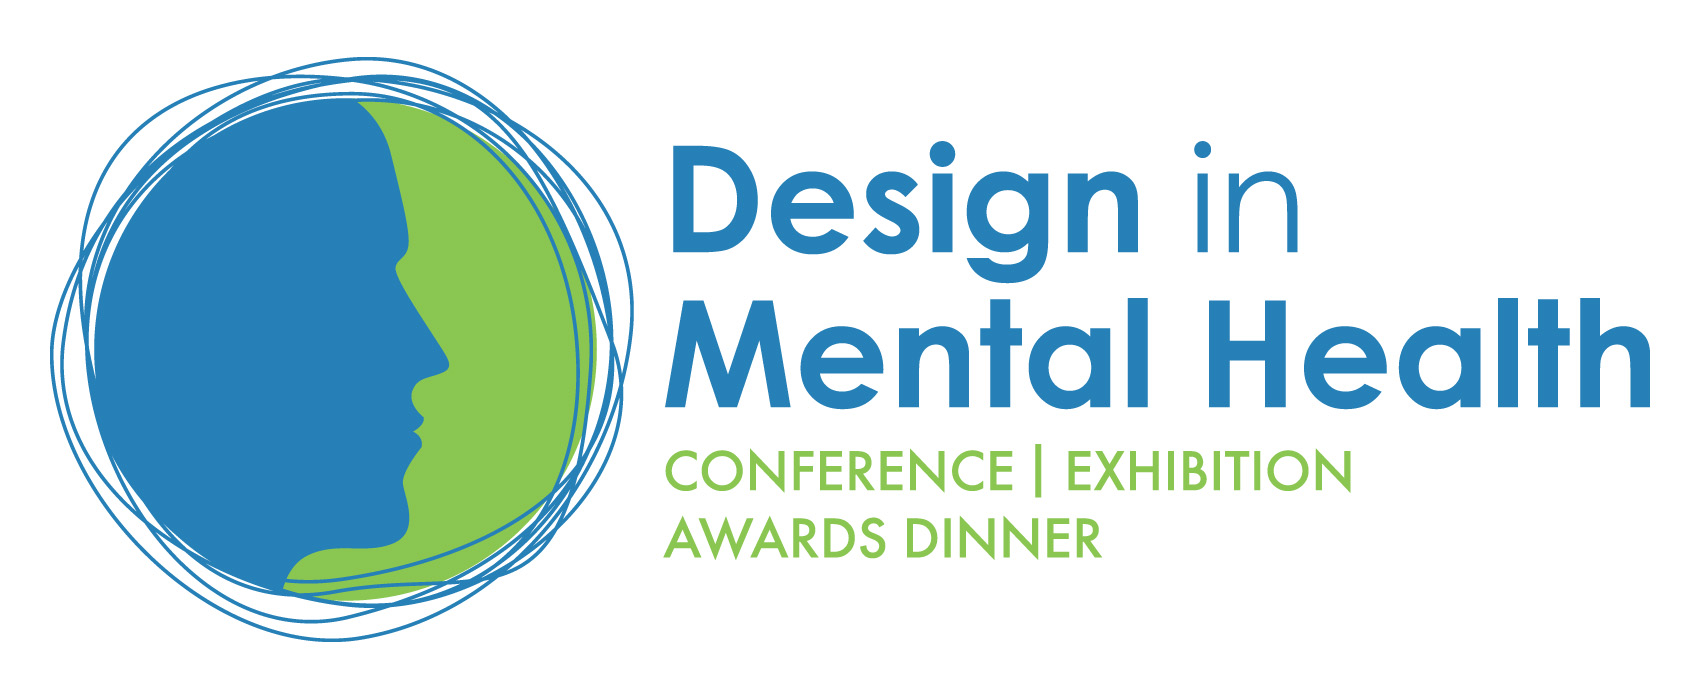 Design in Mental Health 2019: Our biggest year yet